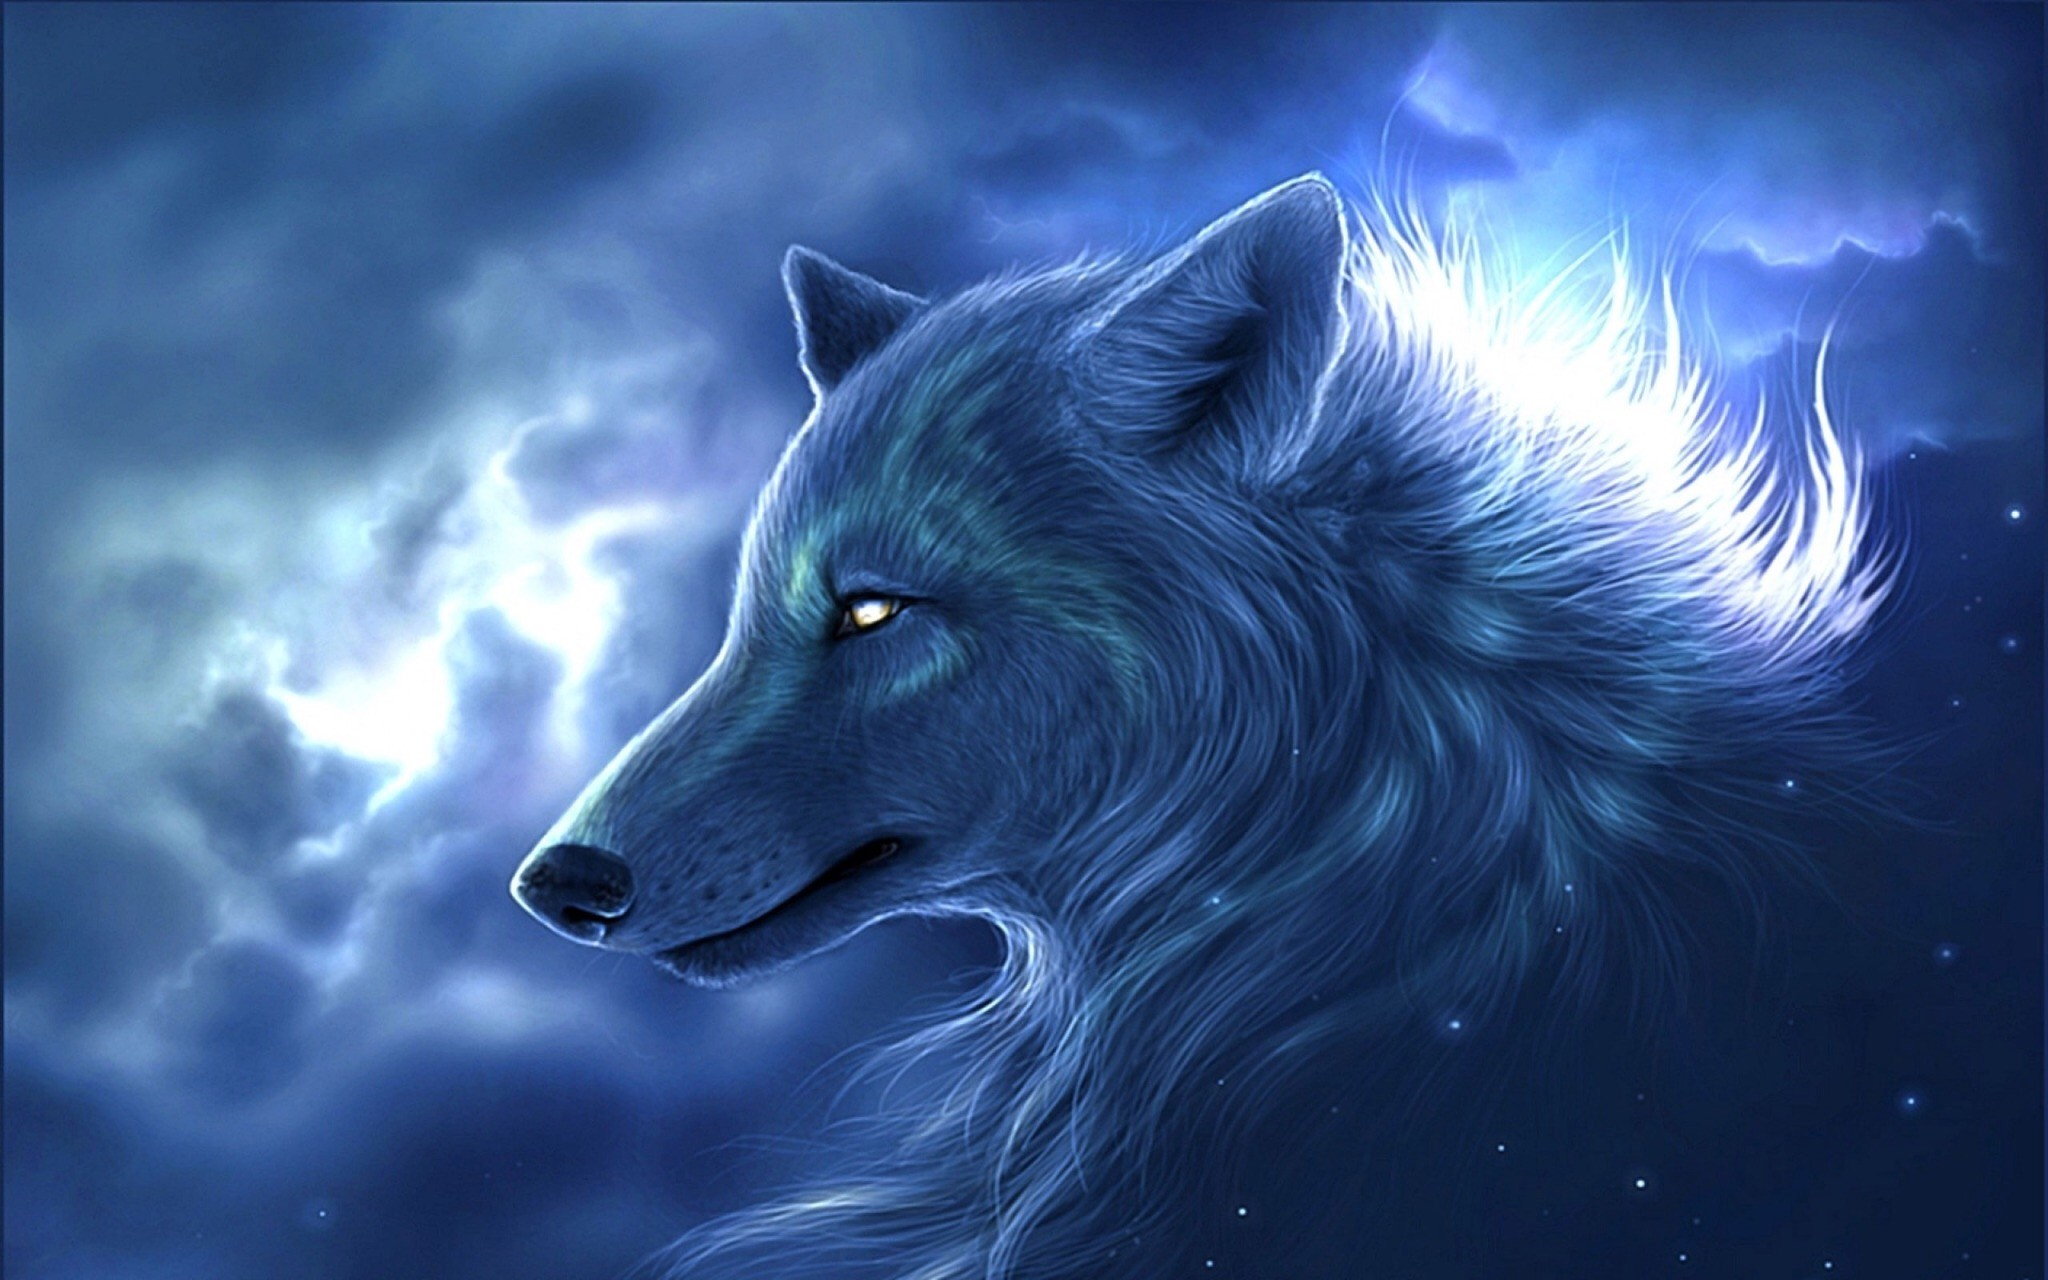 Wolf Wallpaper Love Wallpapers For Desktop Pictures Tattoo Design